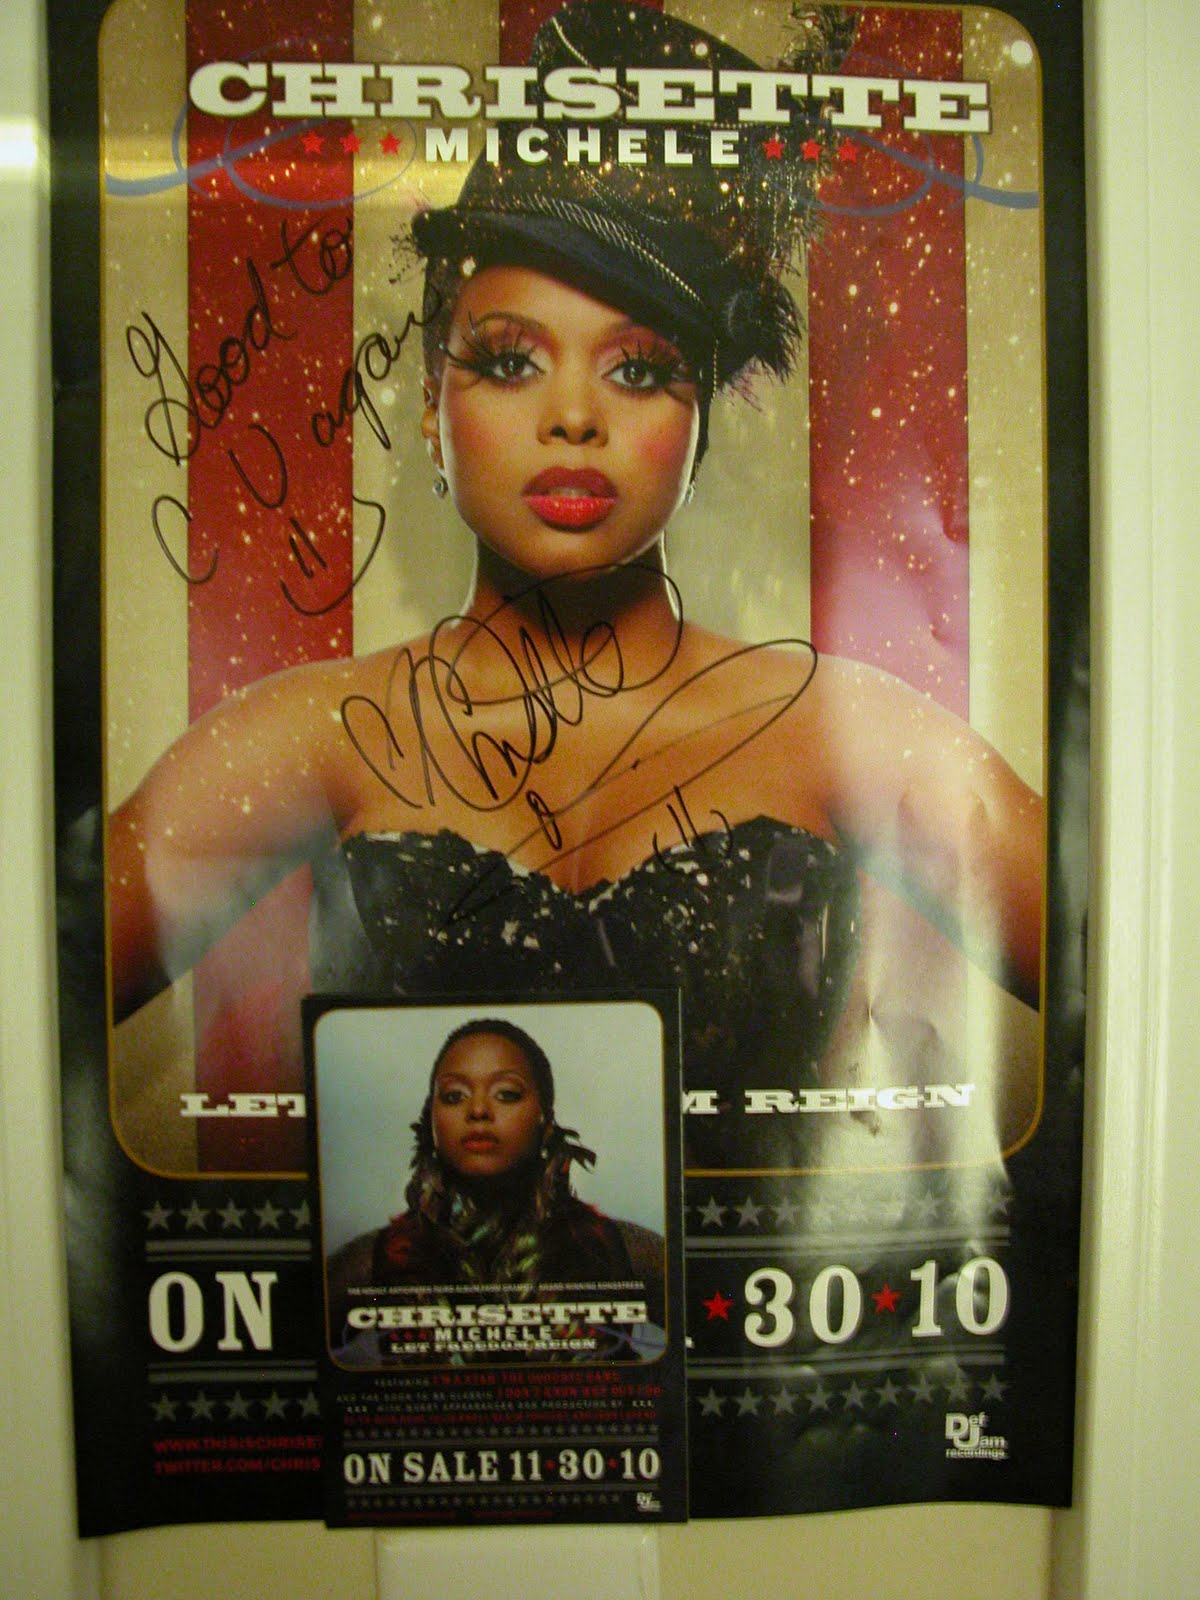 An Encounter with Chrisette Michele!